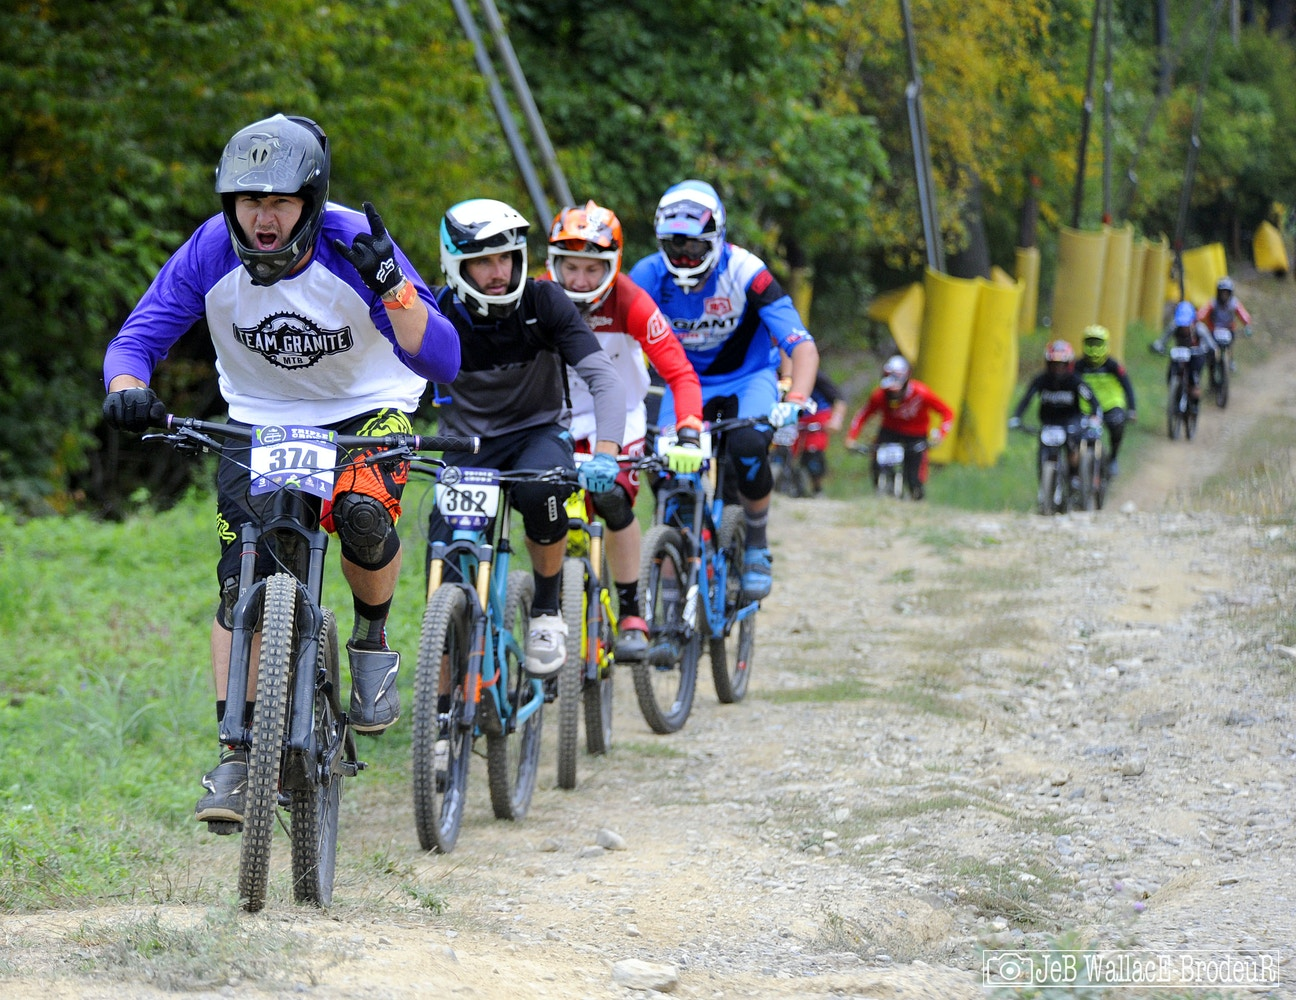 Eastern Triple Crown Enduro Series: Mountain Creek Enduro Results